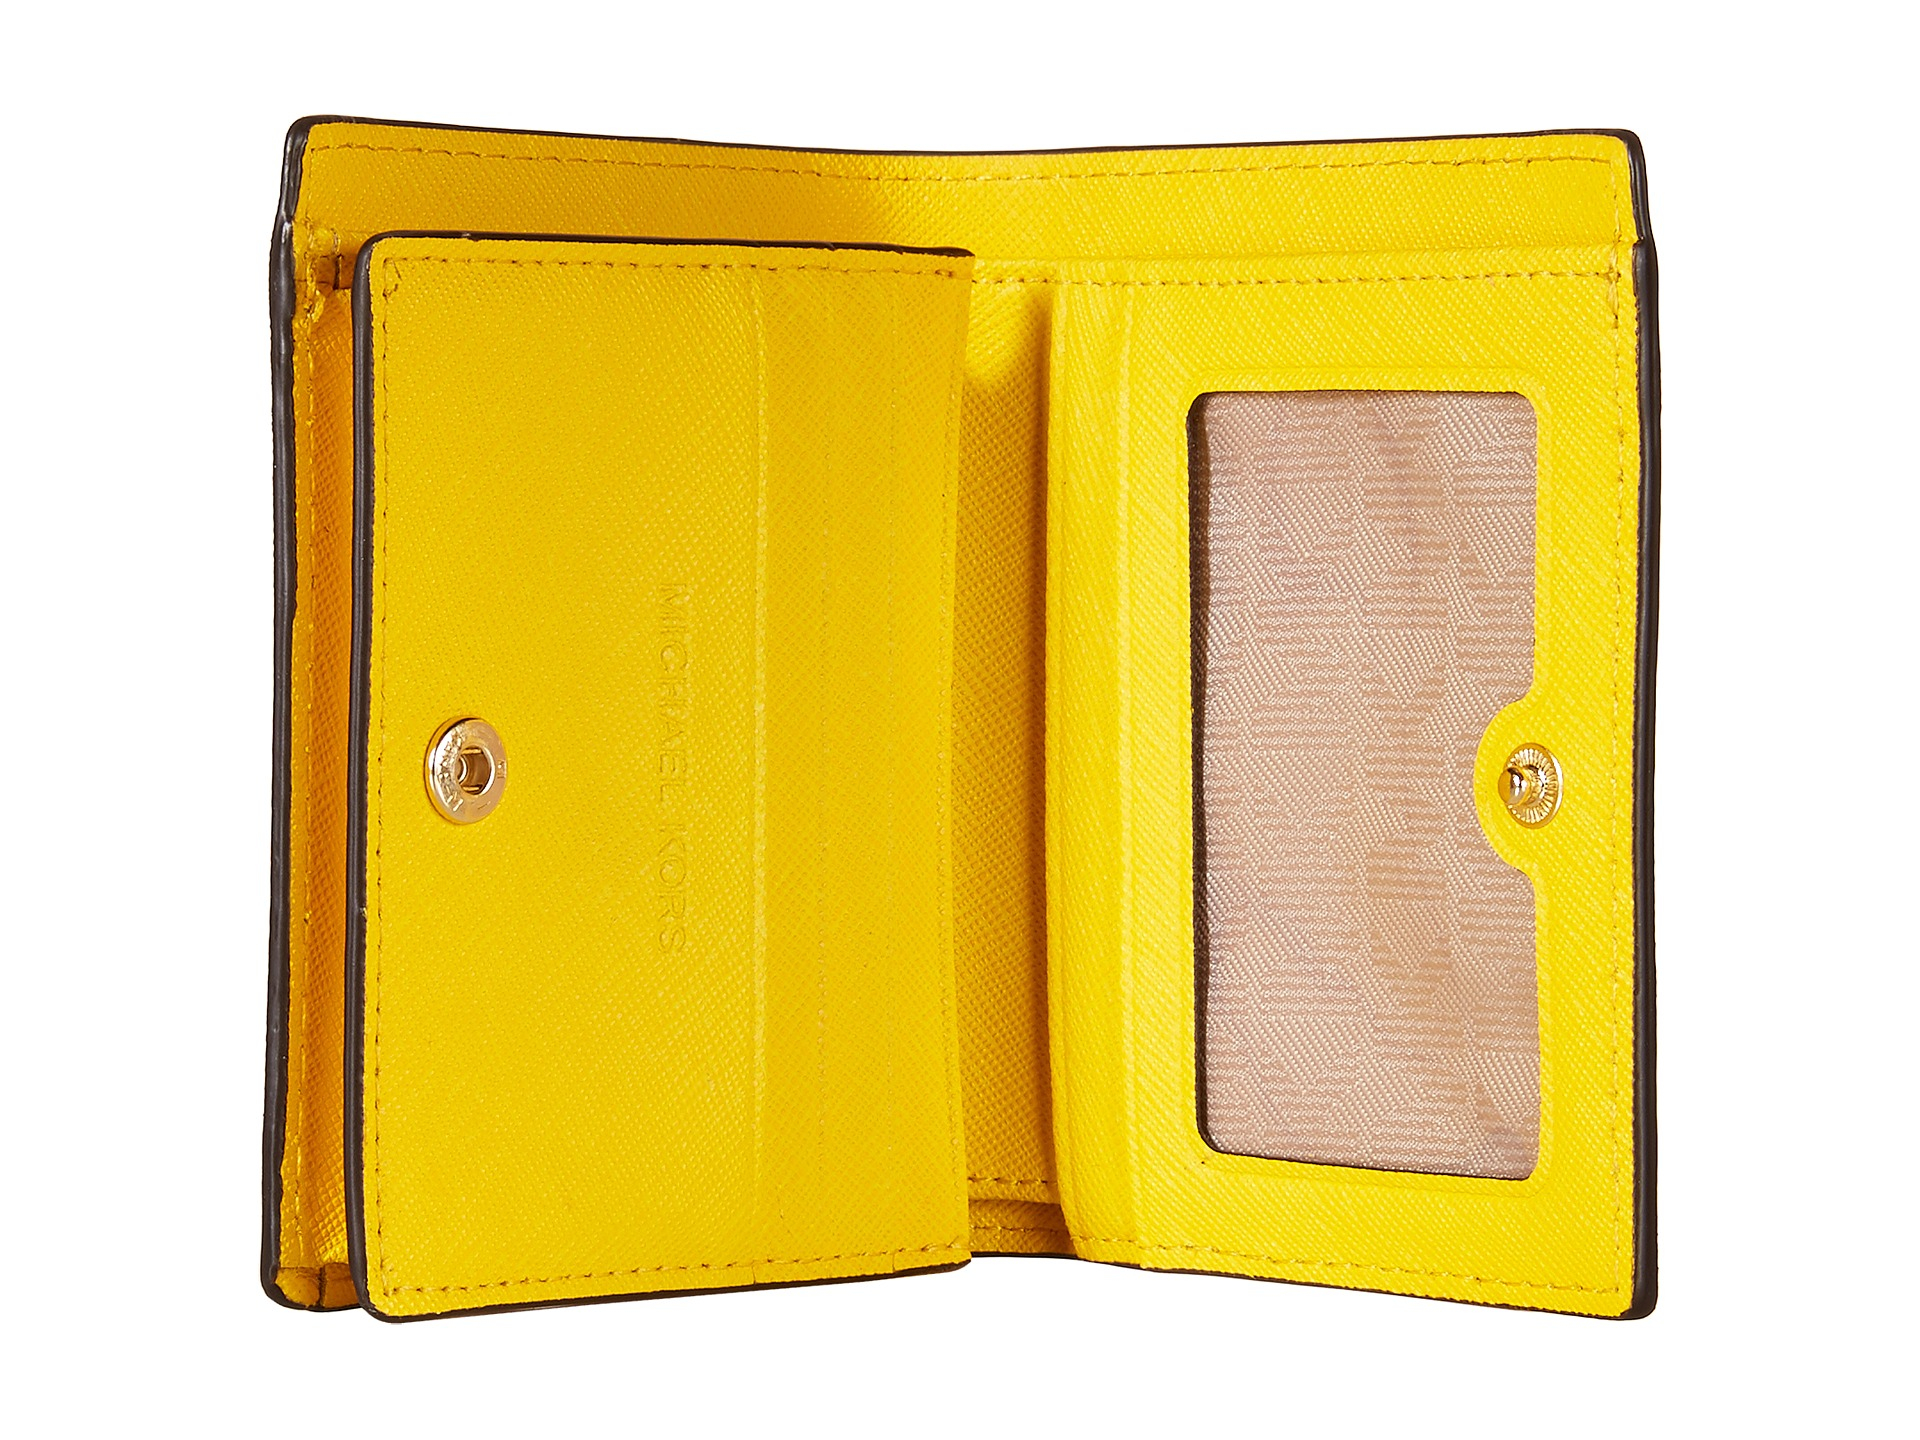 6cfcff0a772d Michael Kors Yellow Wallet - Best Photo Wallet Justiceforkenny.Org